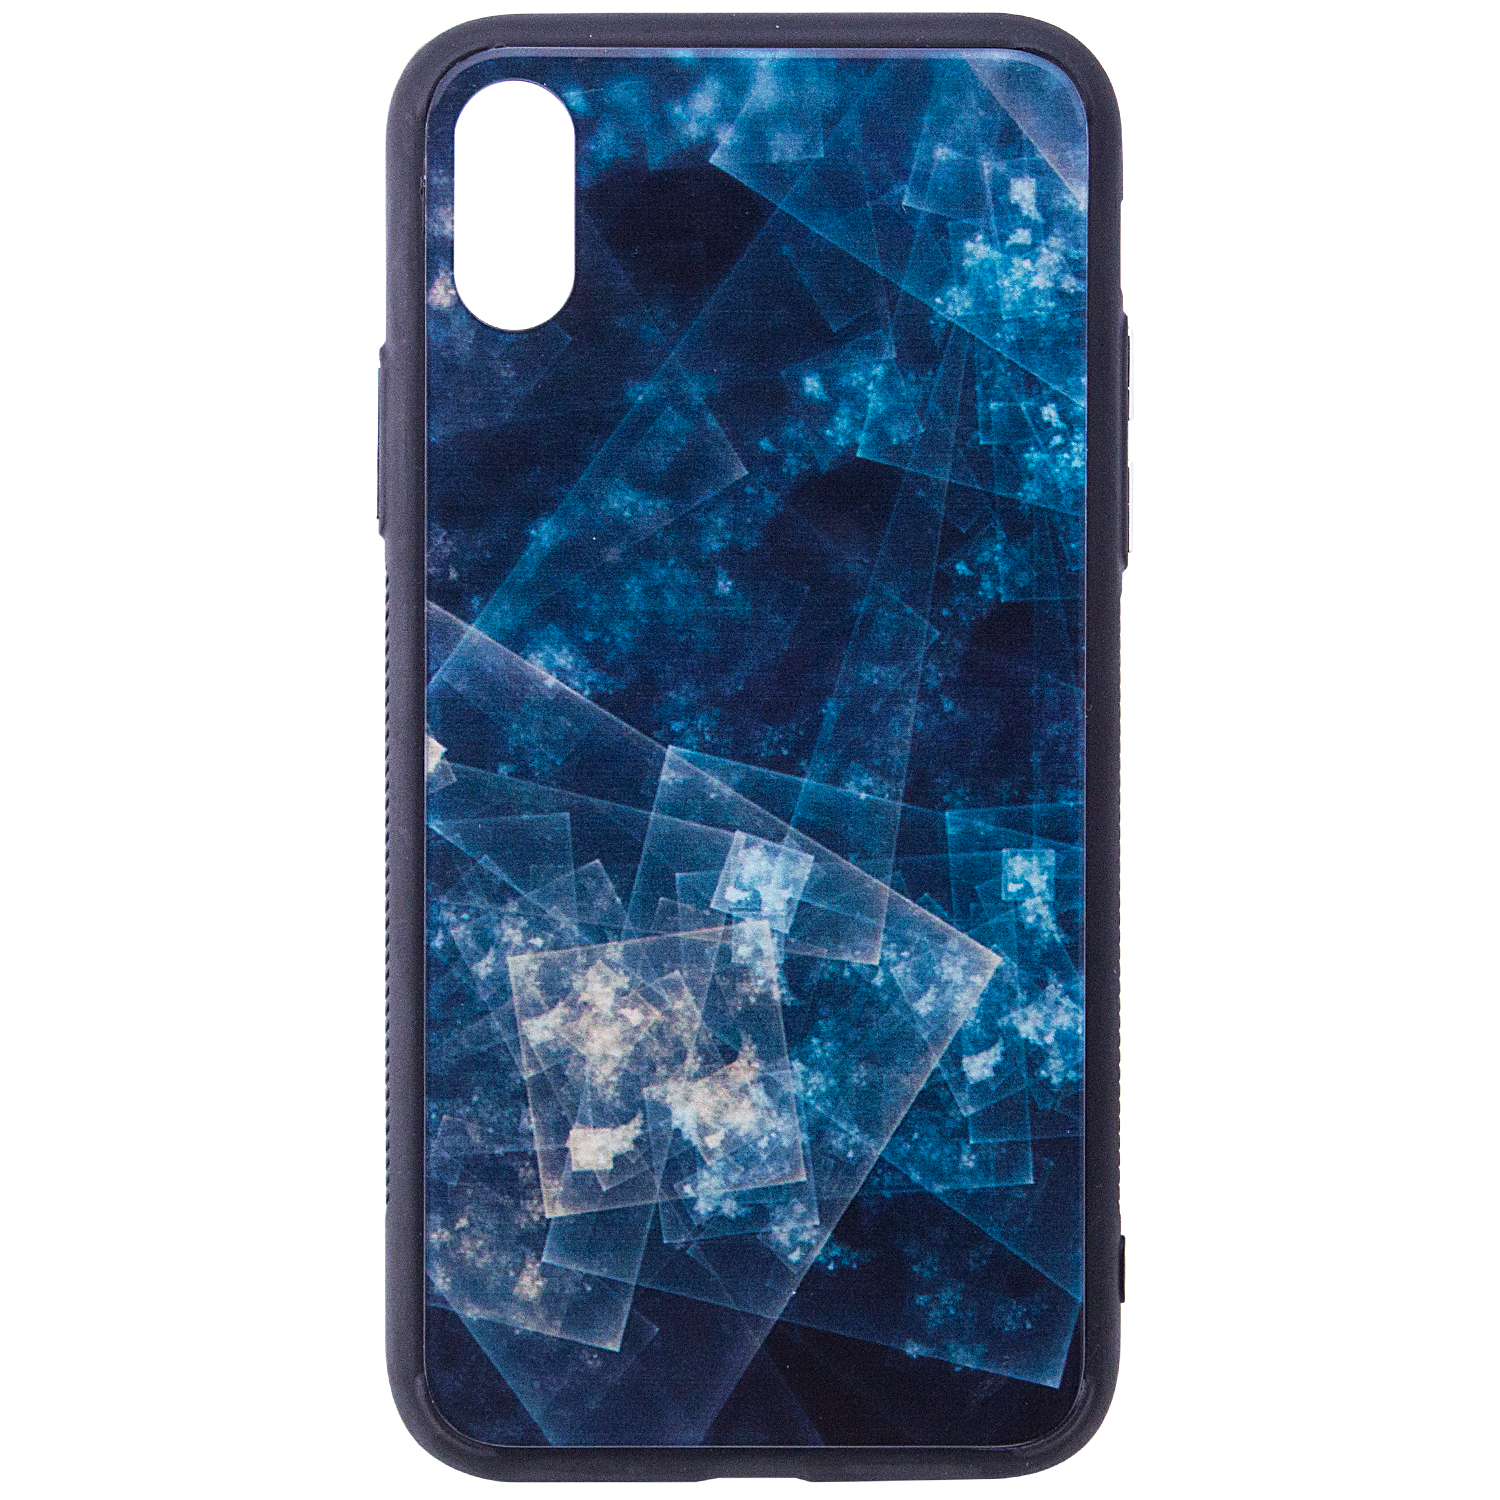 Купить TPU+Glass чехол YCT для Apple iPhone X (5.8') / XS (5.8') за 239 грн